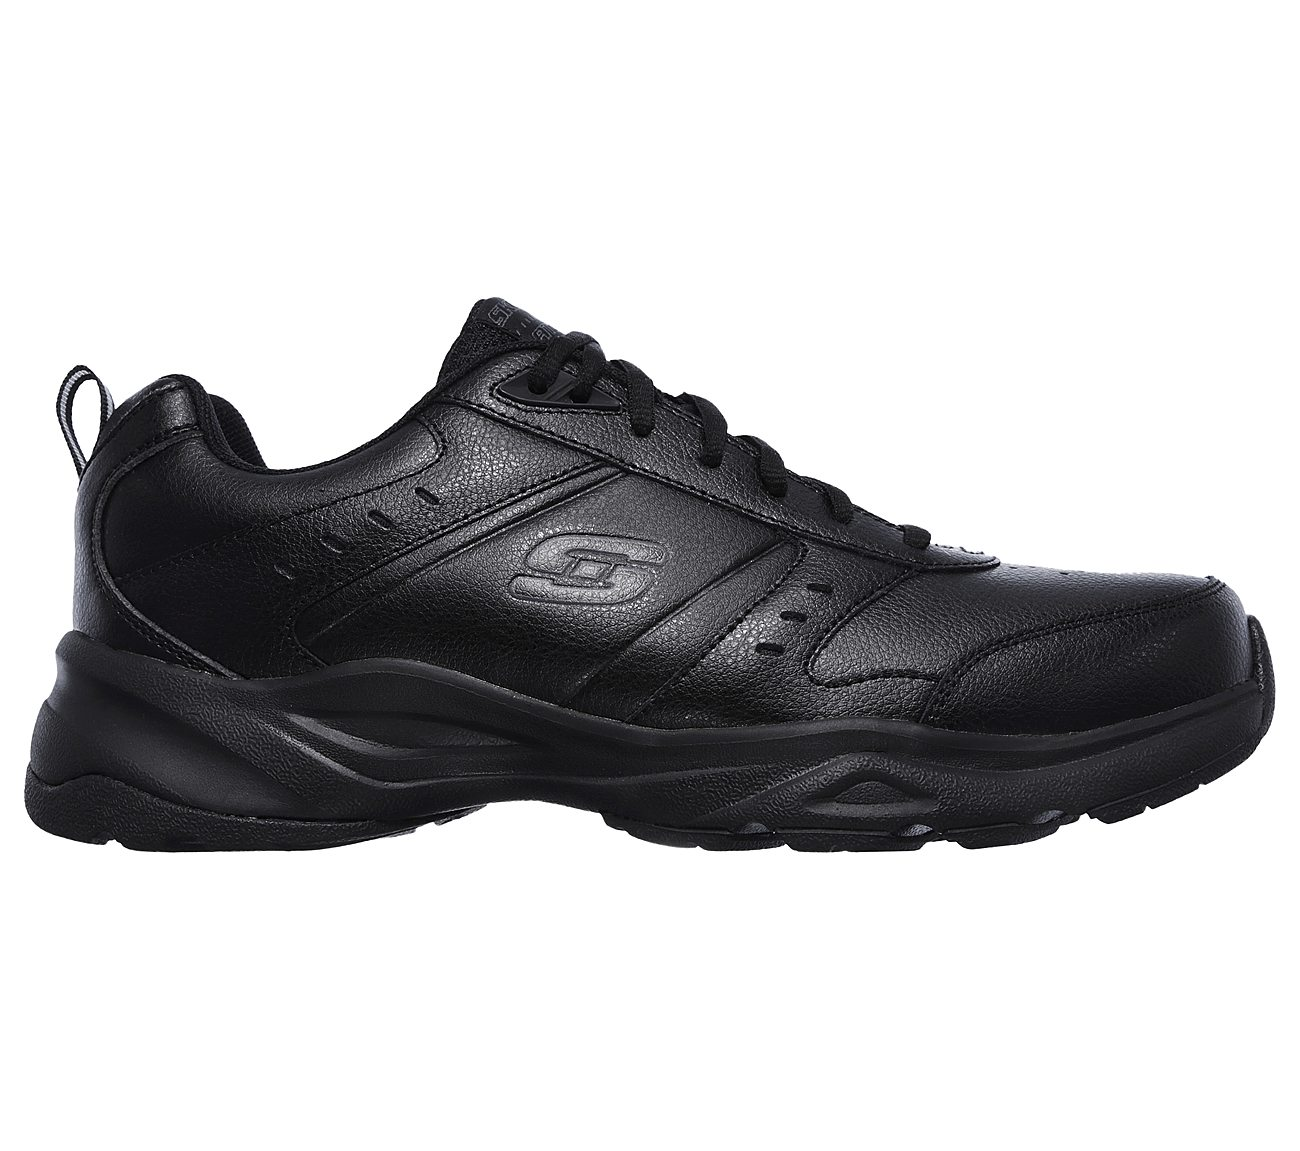 c01161419445 Buy SKECHERS Haniger Sport Shoes only  55.00